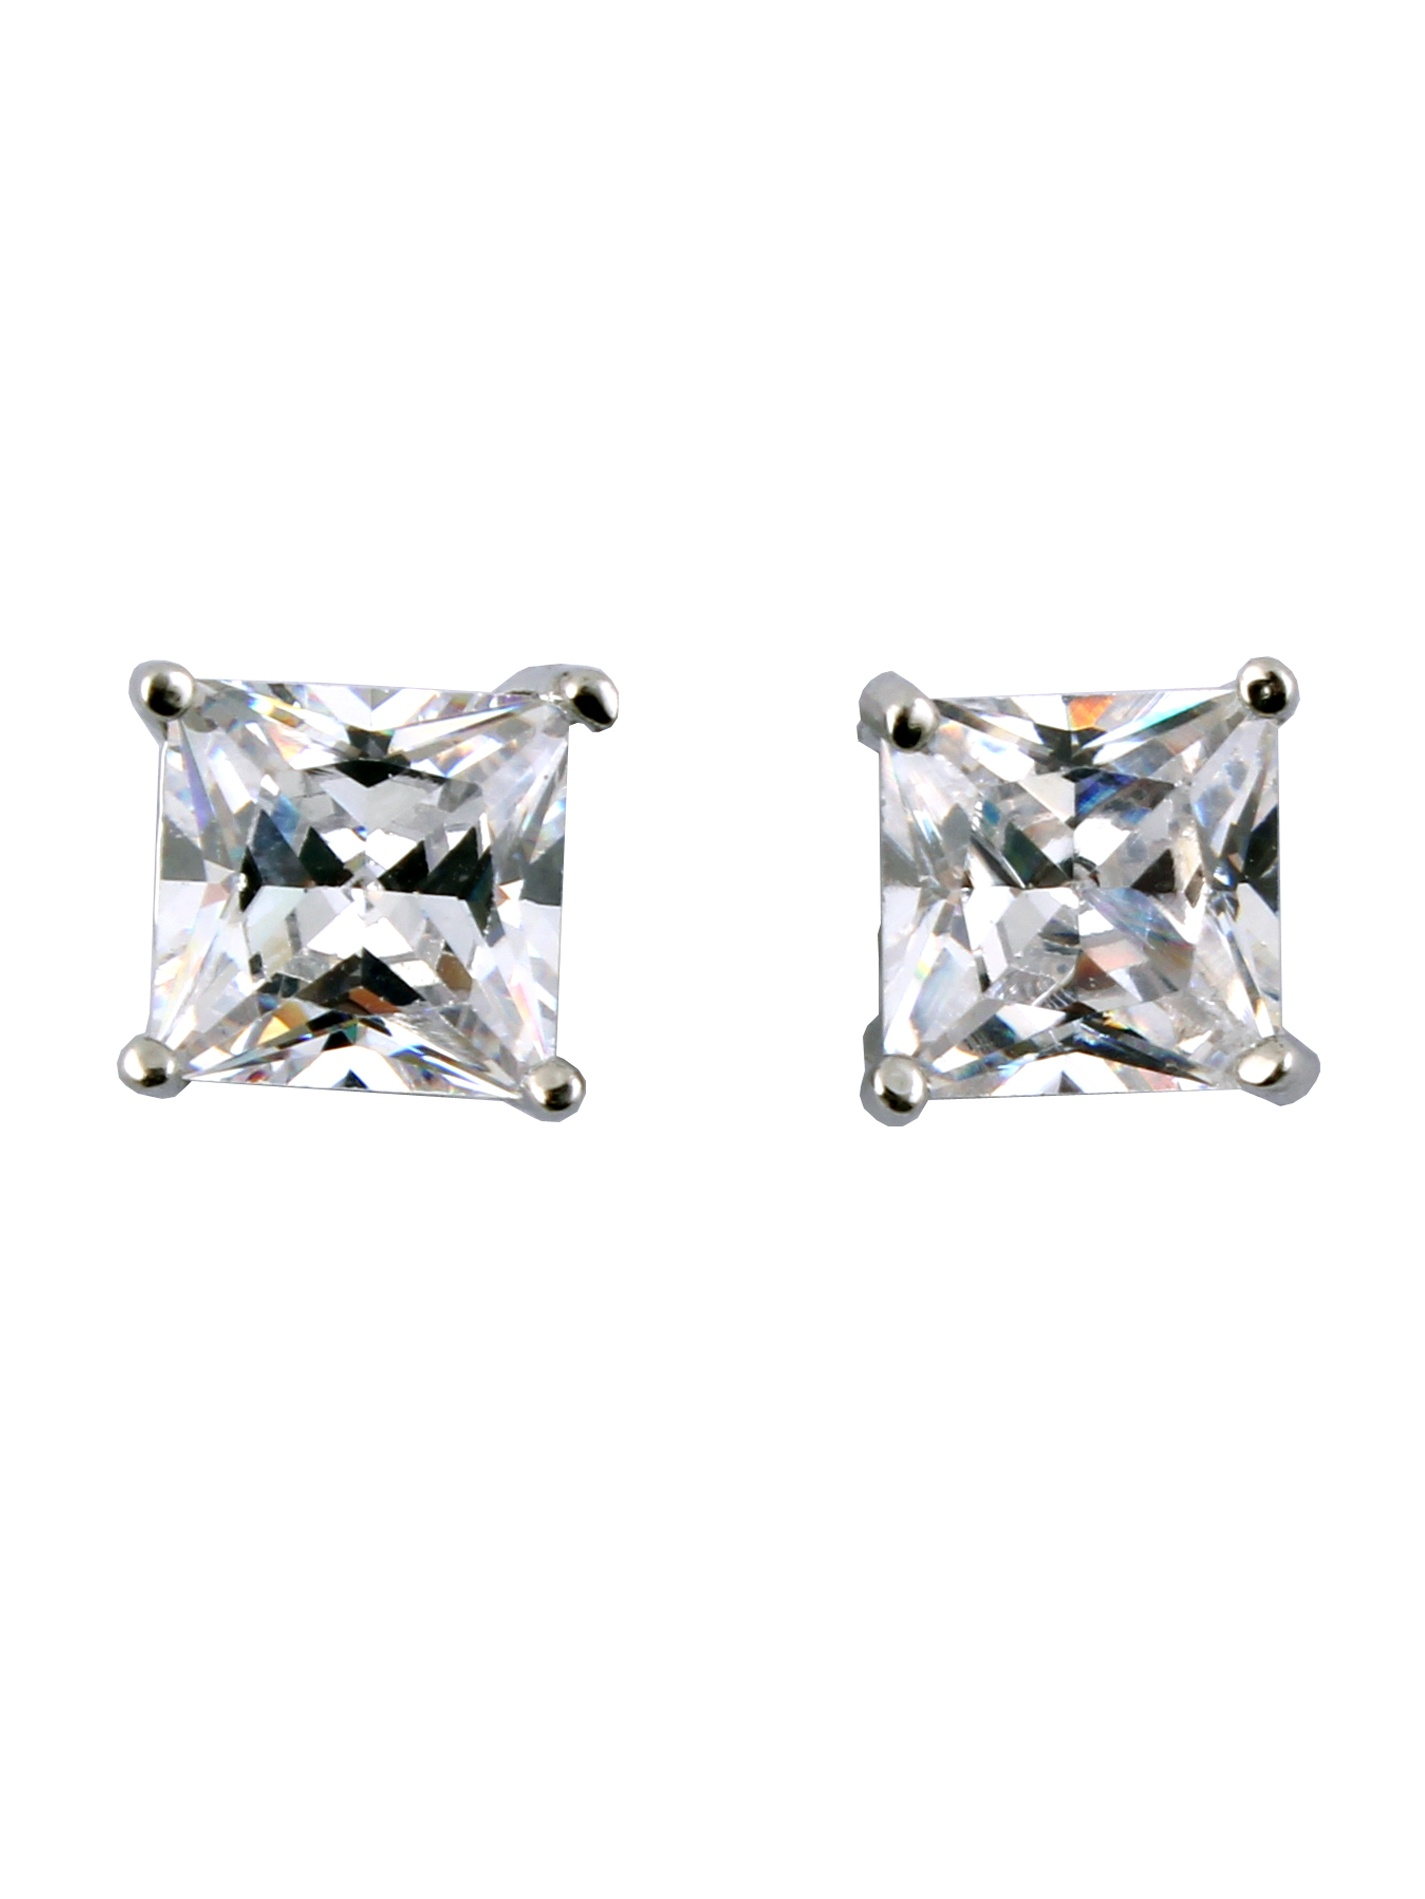 b9416fc661e 1 Pair Unisex CZ Clear Magnetic Clip On 4 Claws Earrings Studs - Walmart.com